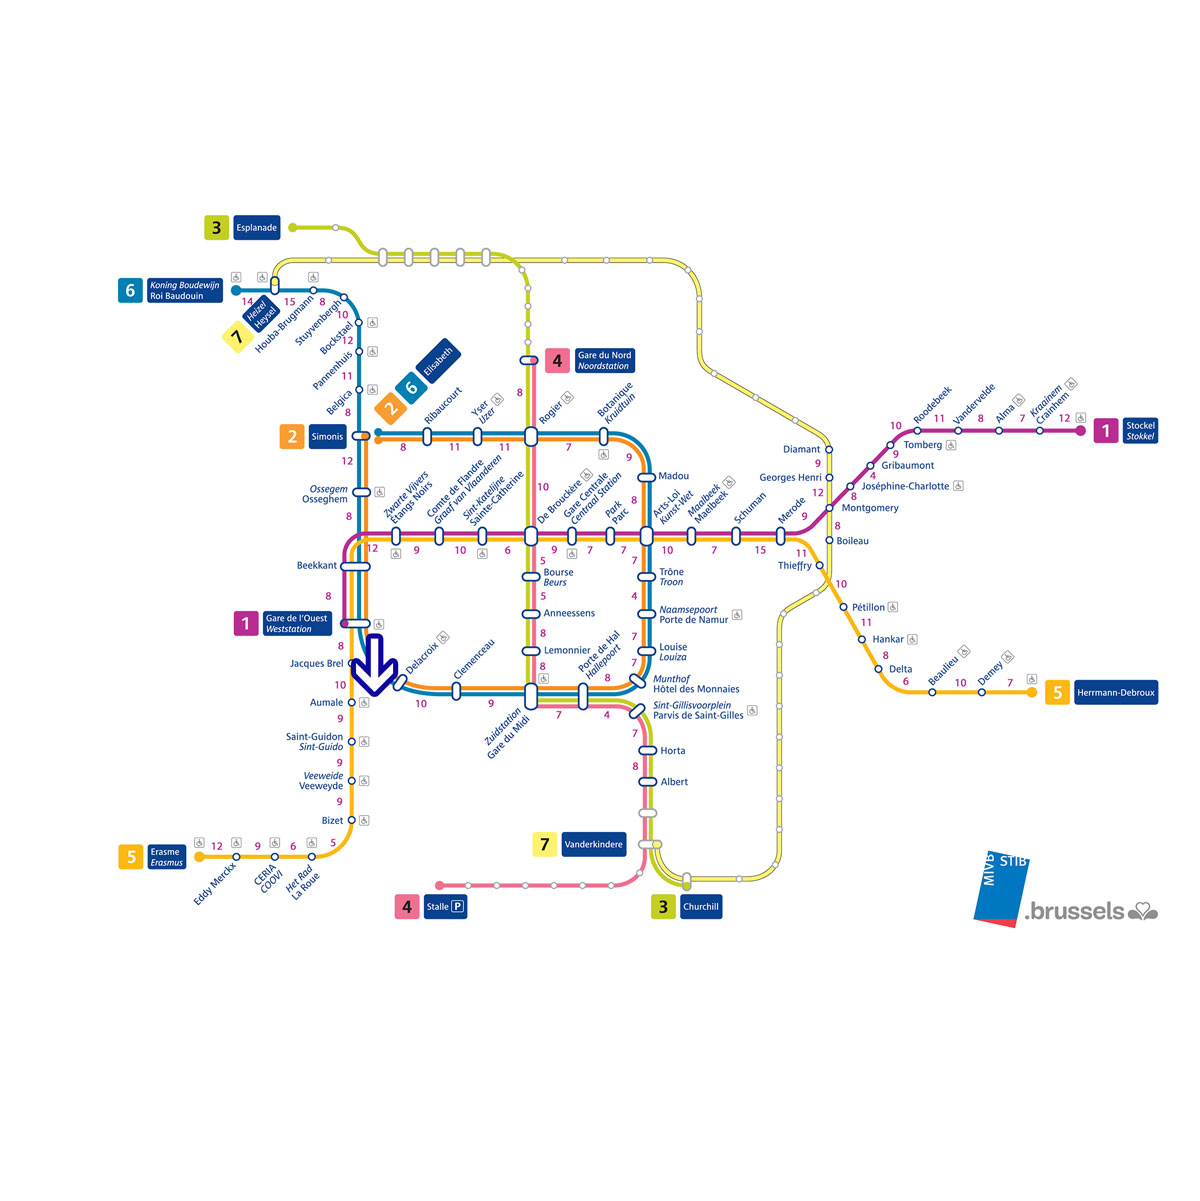 Accessible with public transport, served by all metro lines. / Accessible par les transports en commun, desservi par toutes les lignes de métro. / Toegankelijk met het openbaar vervoer, bediend door alle metrolijnen.